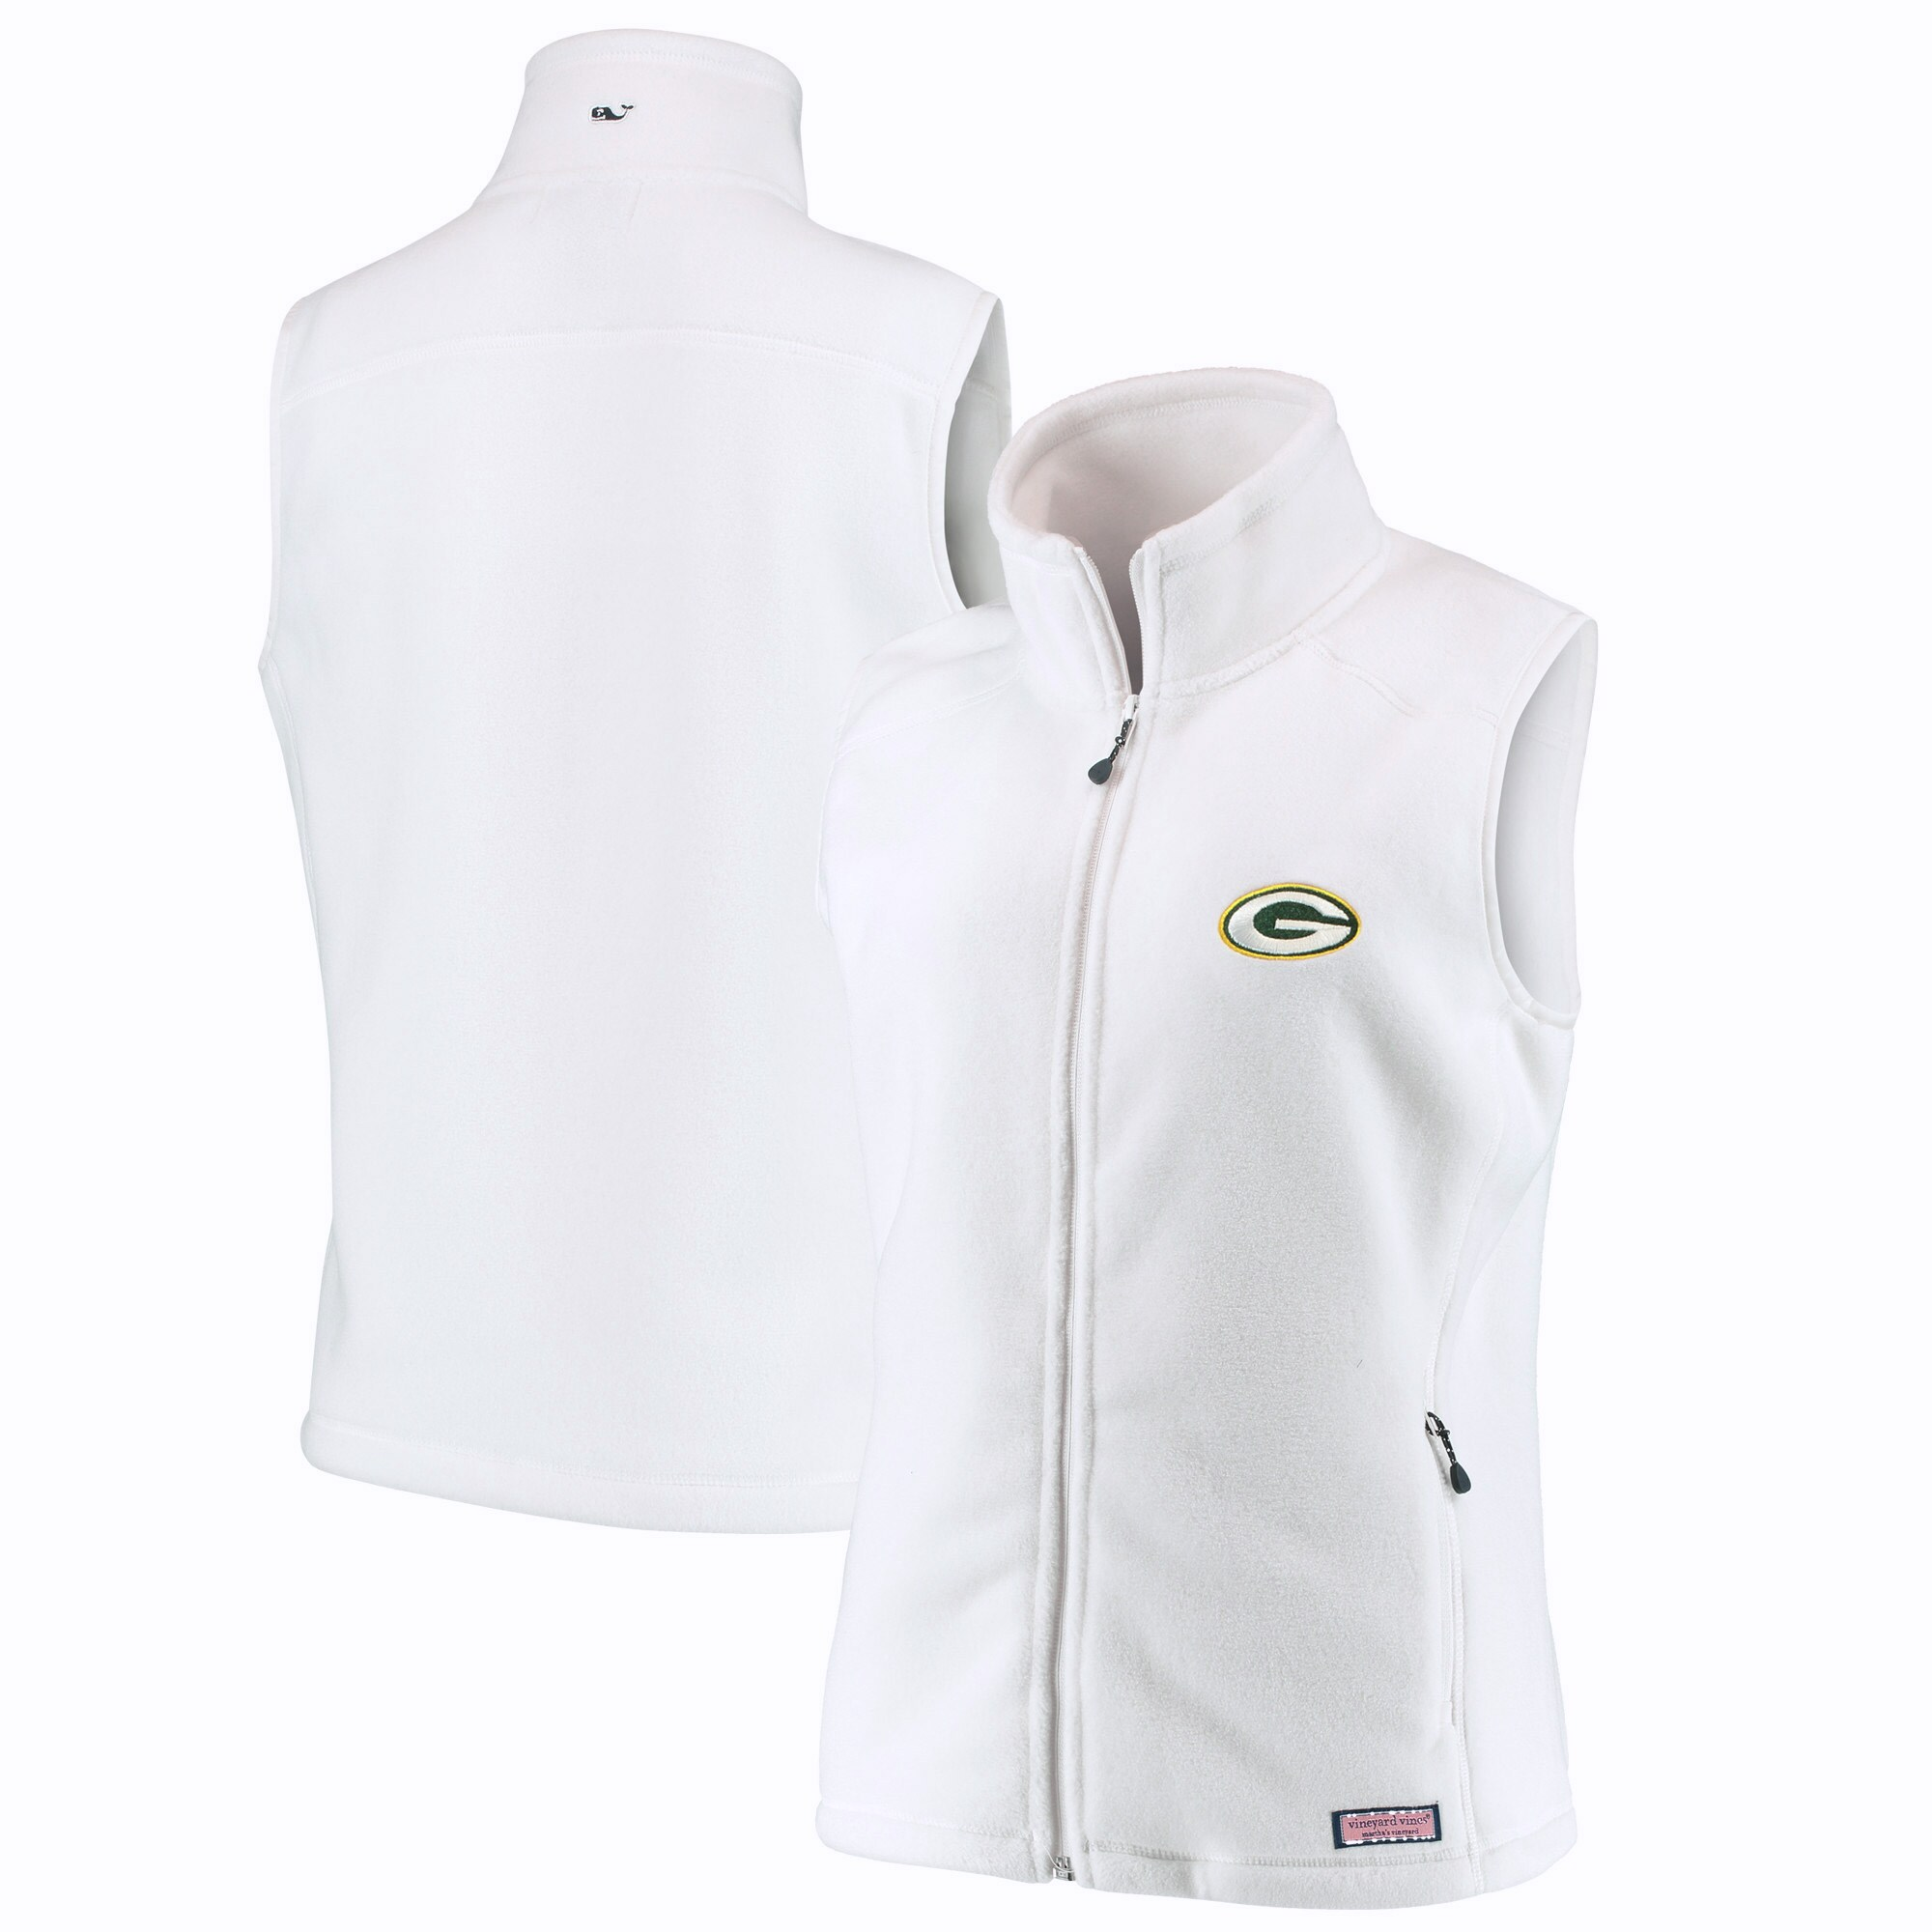 Green Bay Packers Vineyard Vines Women's Westerly Vest - White